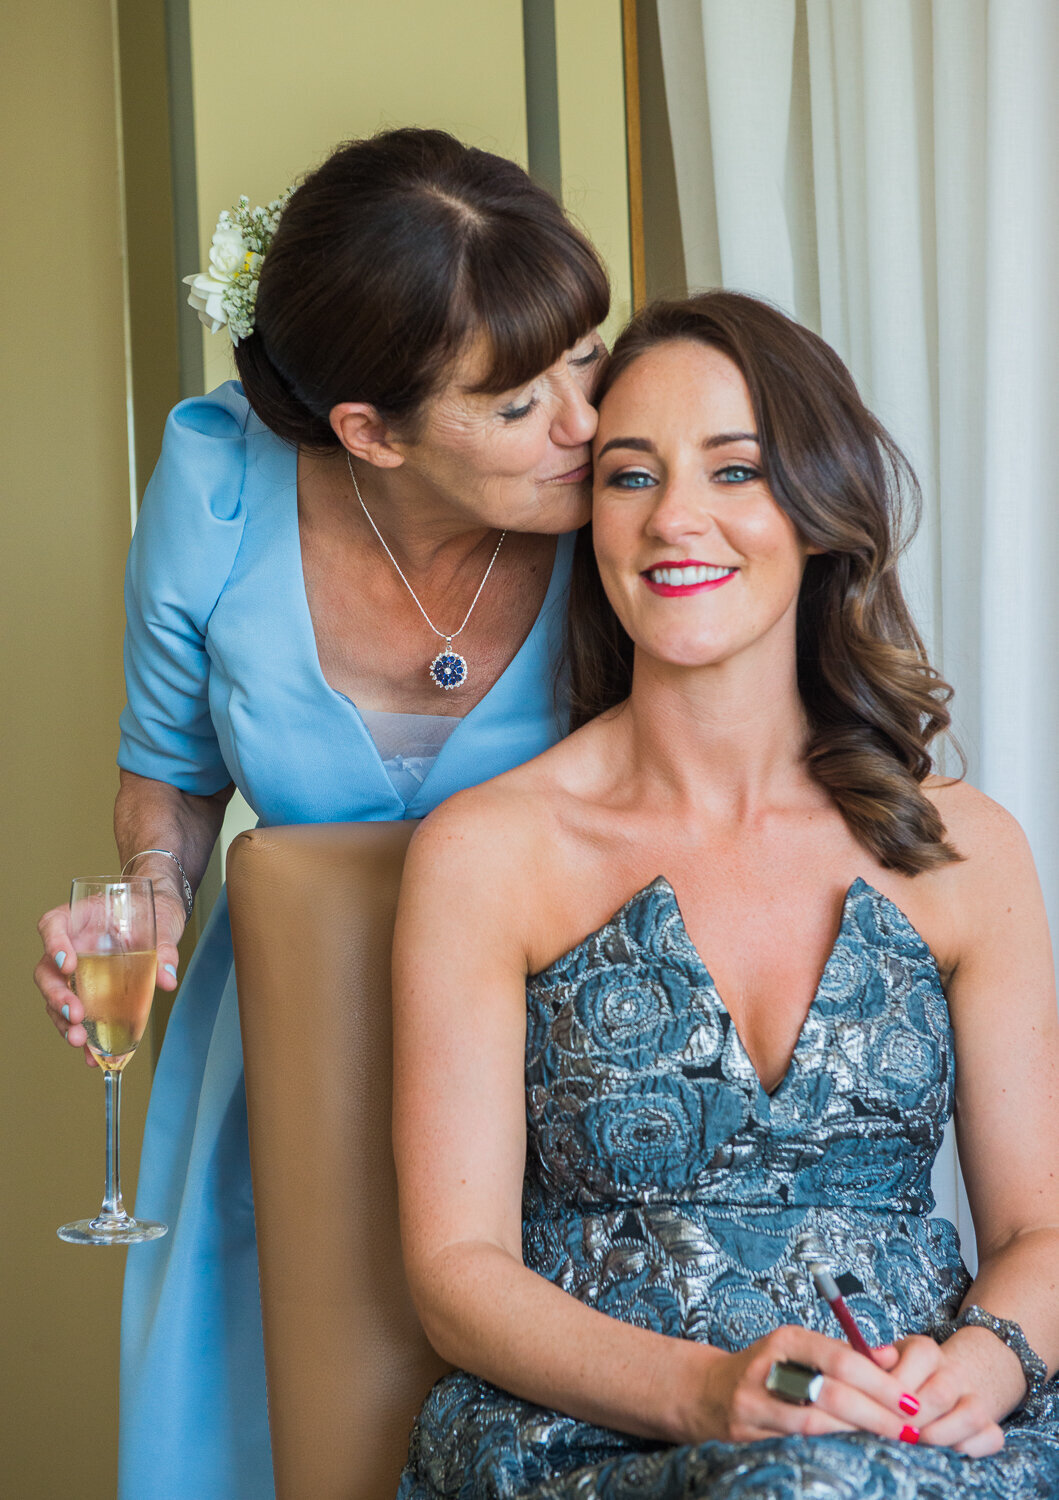 Mum kissing daughter at wedding preparations